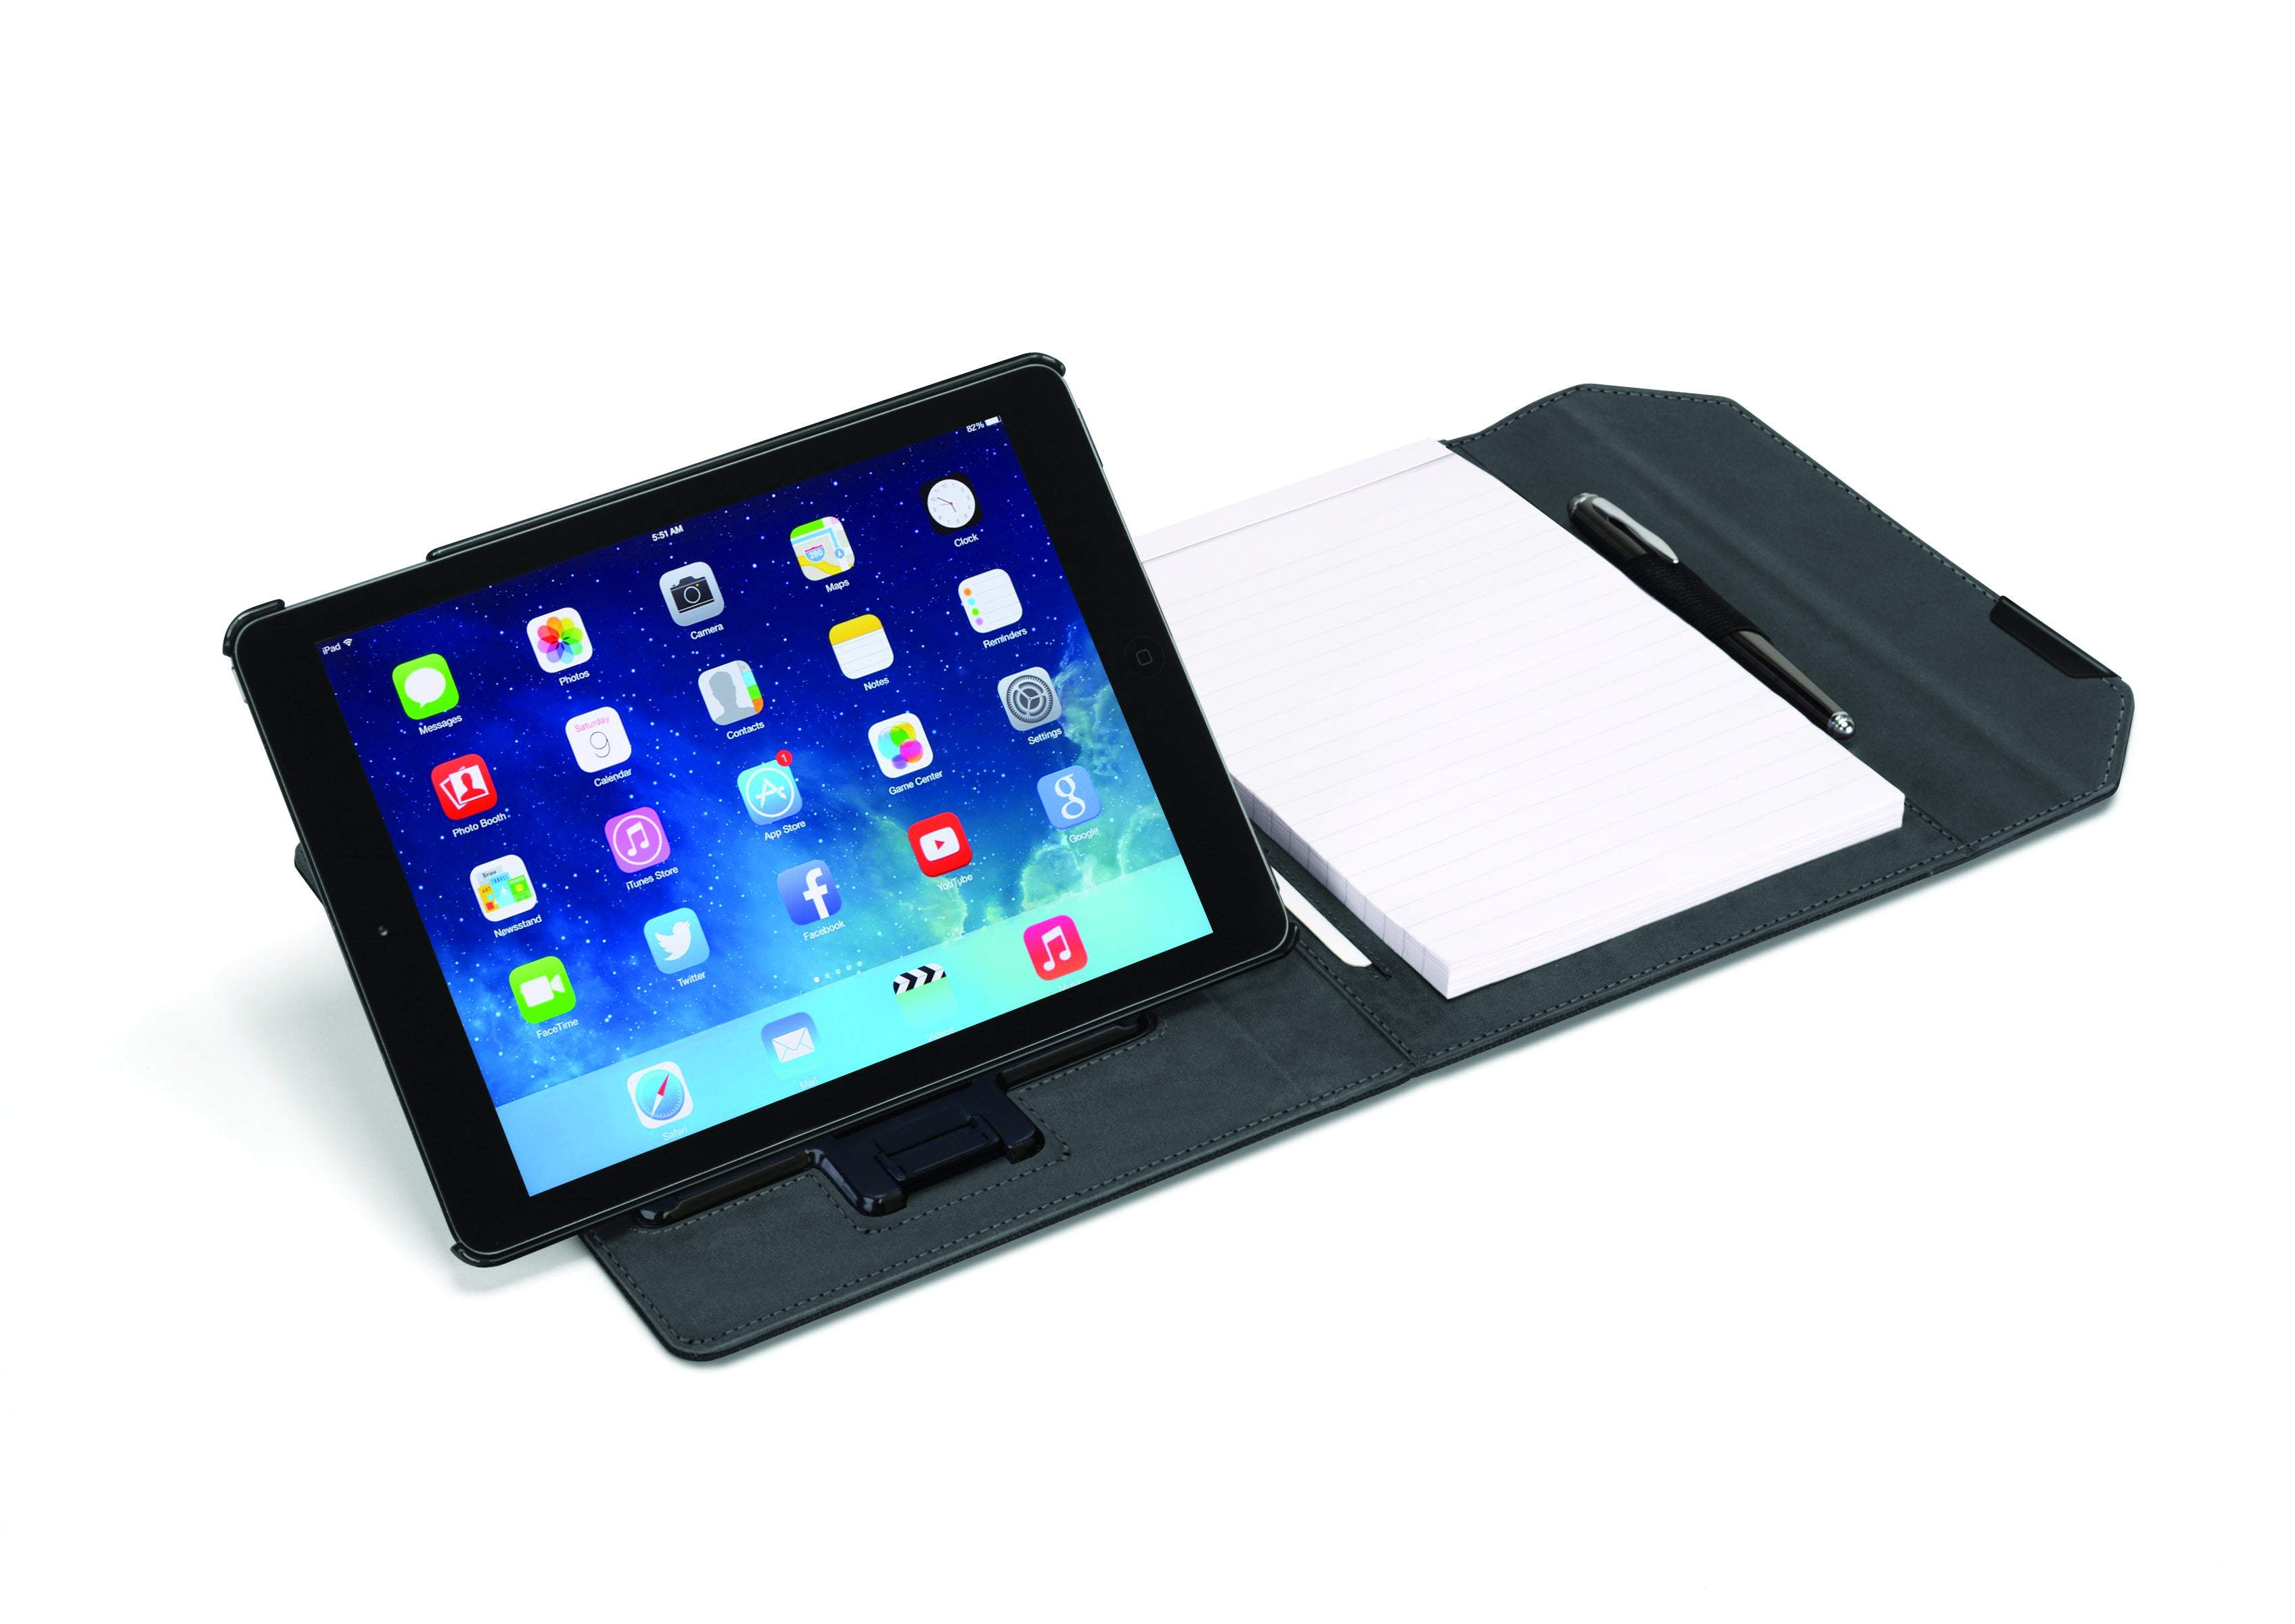 separation shoes ebbaa 6c859 Fellowes MobilePro Series review: Great iPad workstation brought ...